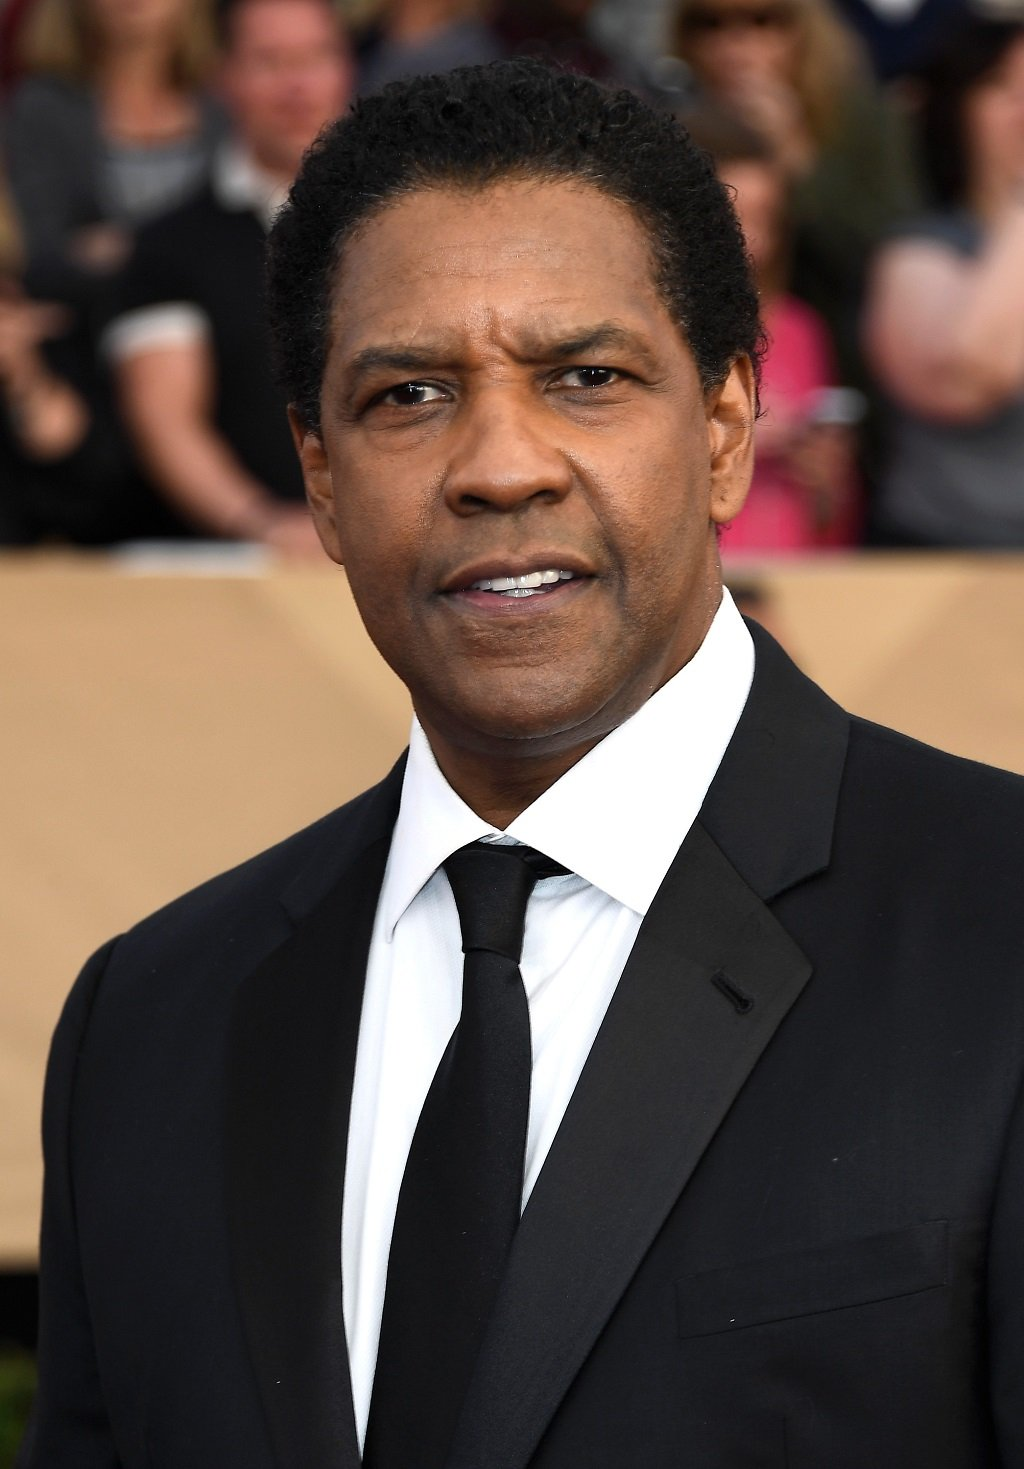 Denzel Washington at the 23rd Annual Screen Actors Guild Awards at The Shrine Auditorium on January 29, 2017, in Los Angeles, California | Source: Getty Images